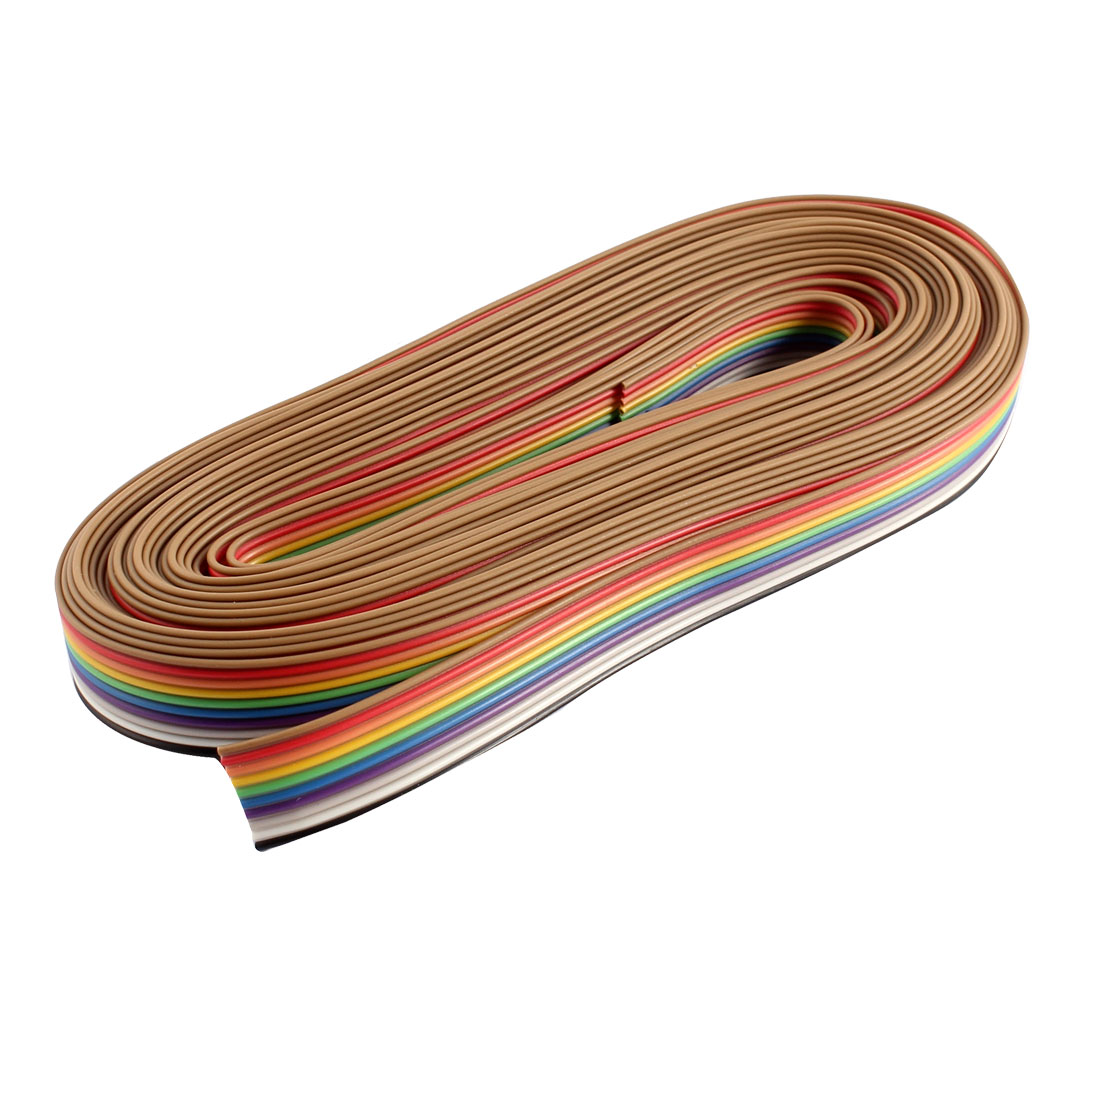 UXCELL 6M 20Ft Length 13mm Width 10 Pin 10 Way Rainbow Color Flat Ribbon Cable Idc Wire 1 27mm DIY for FC IDC 2 54mm Connector in Cable End Caps from Home Improvement